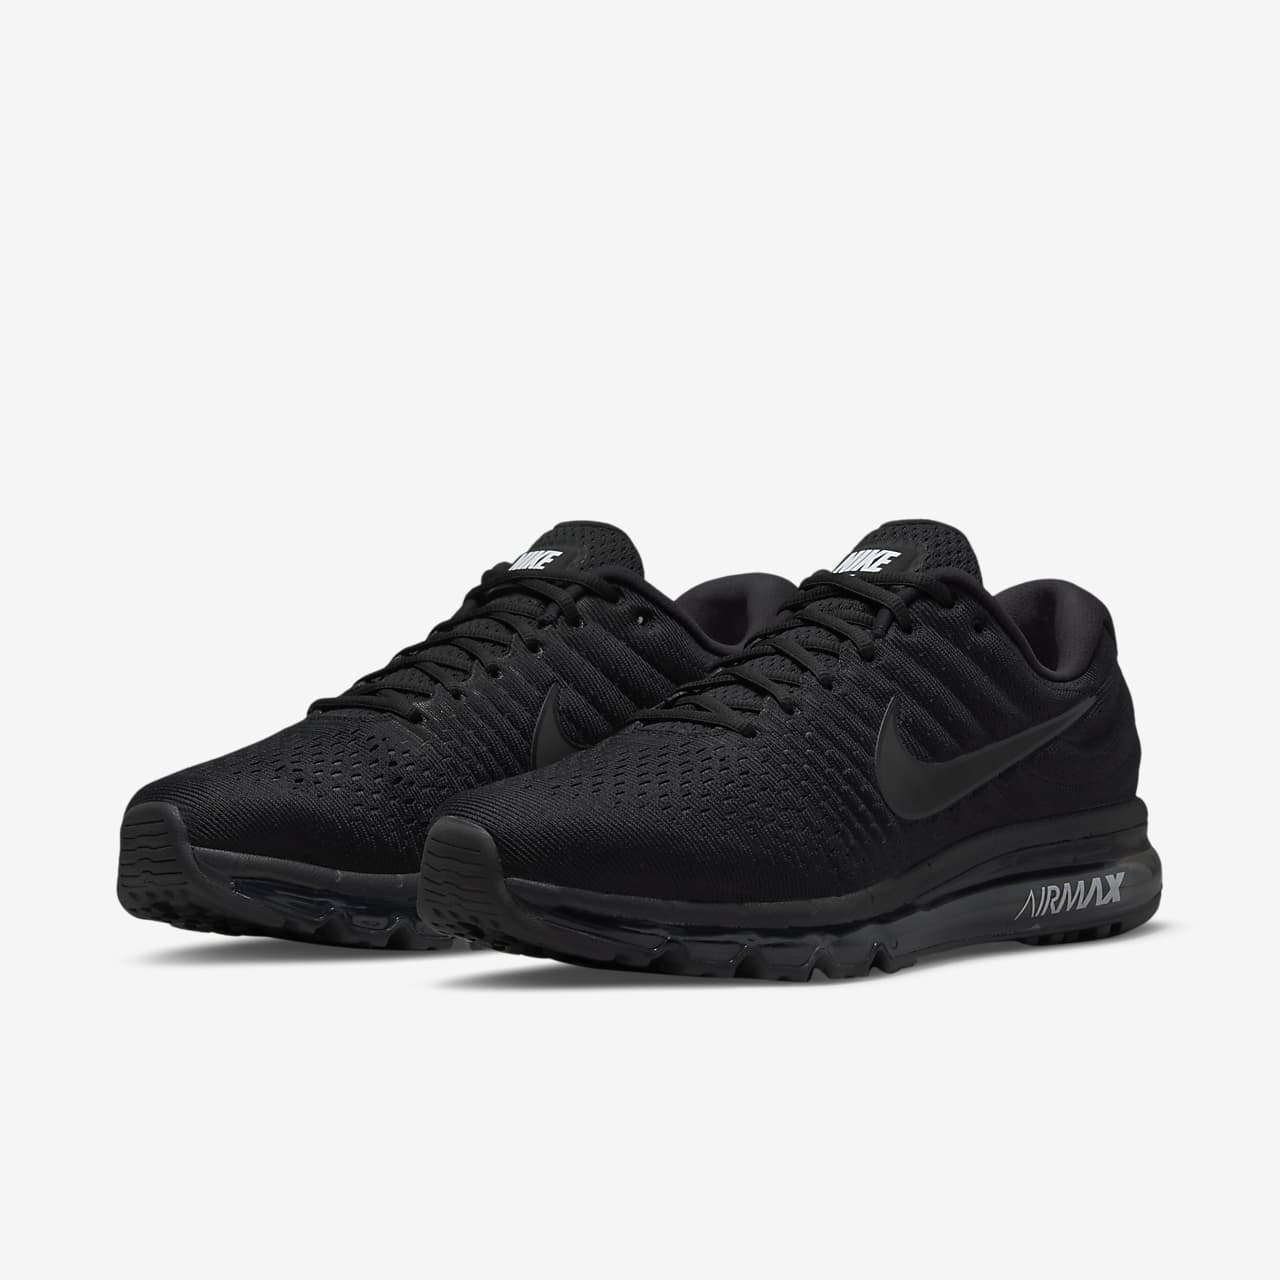 outlet store eb122 7d5a0 ... Chaussure Nike Air Max 2017 pour Homme